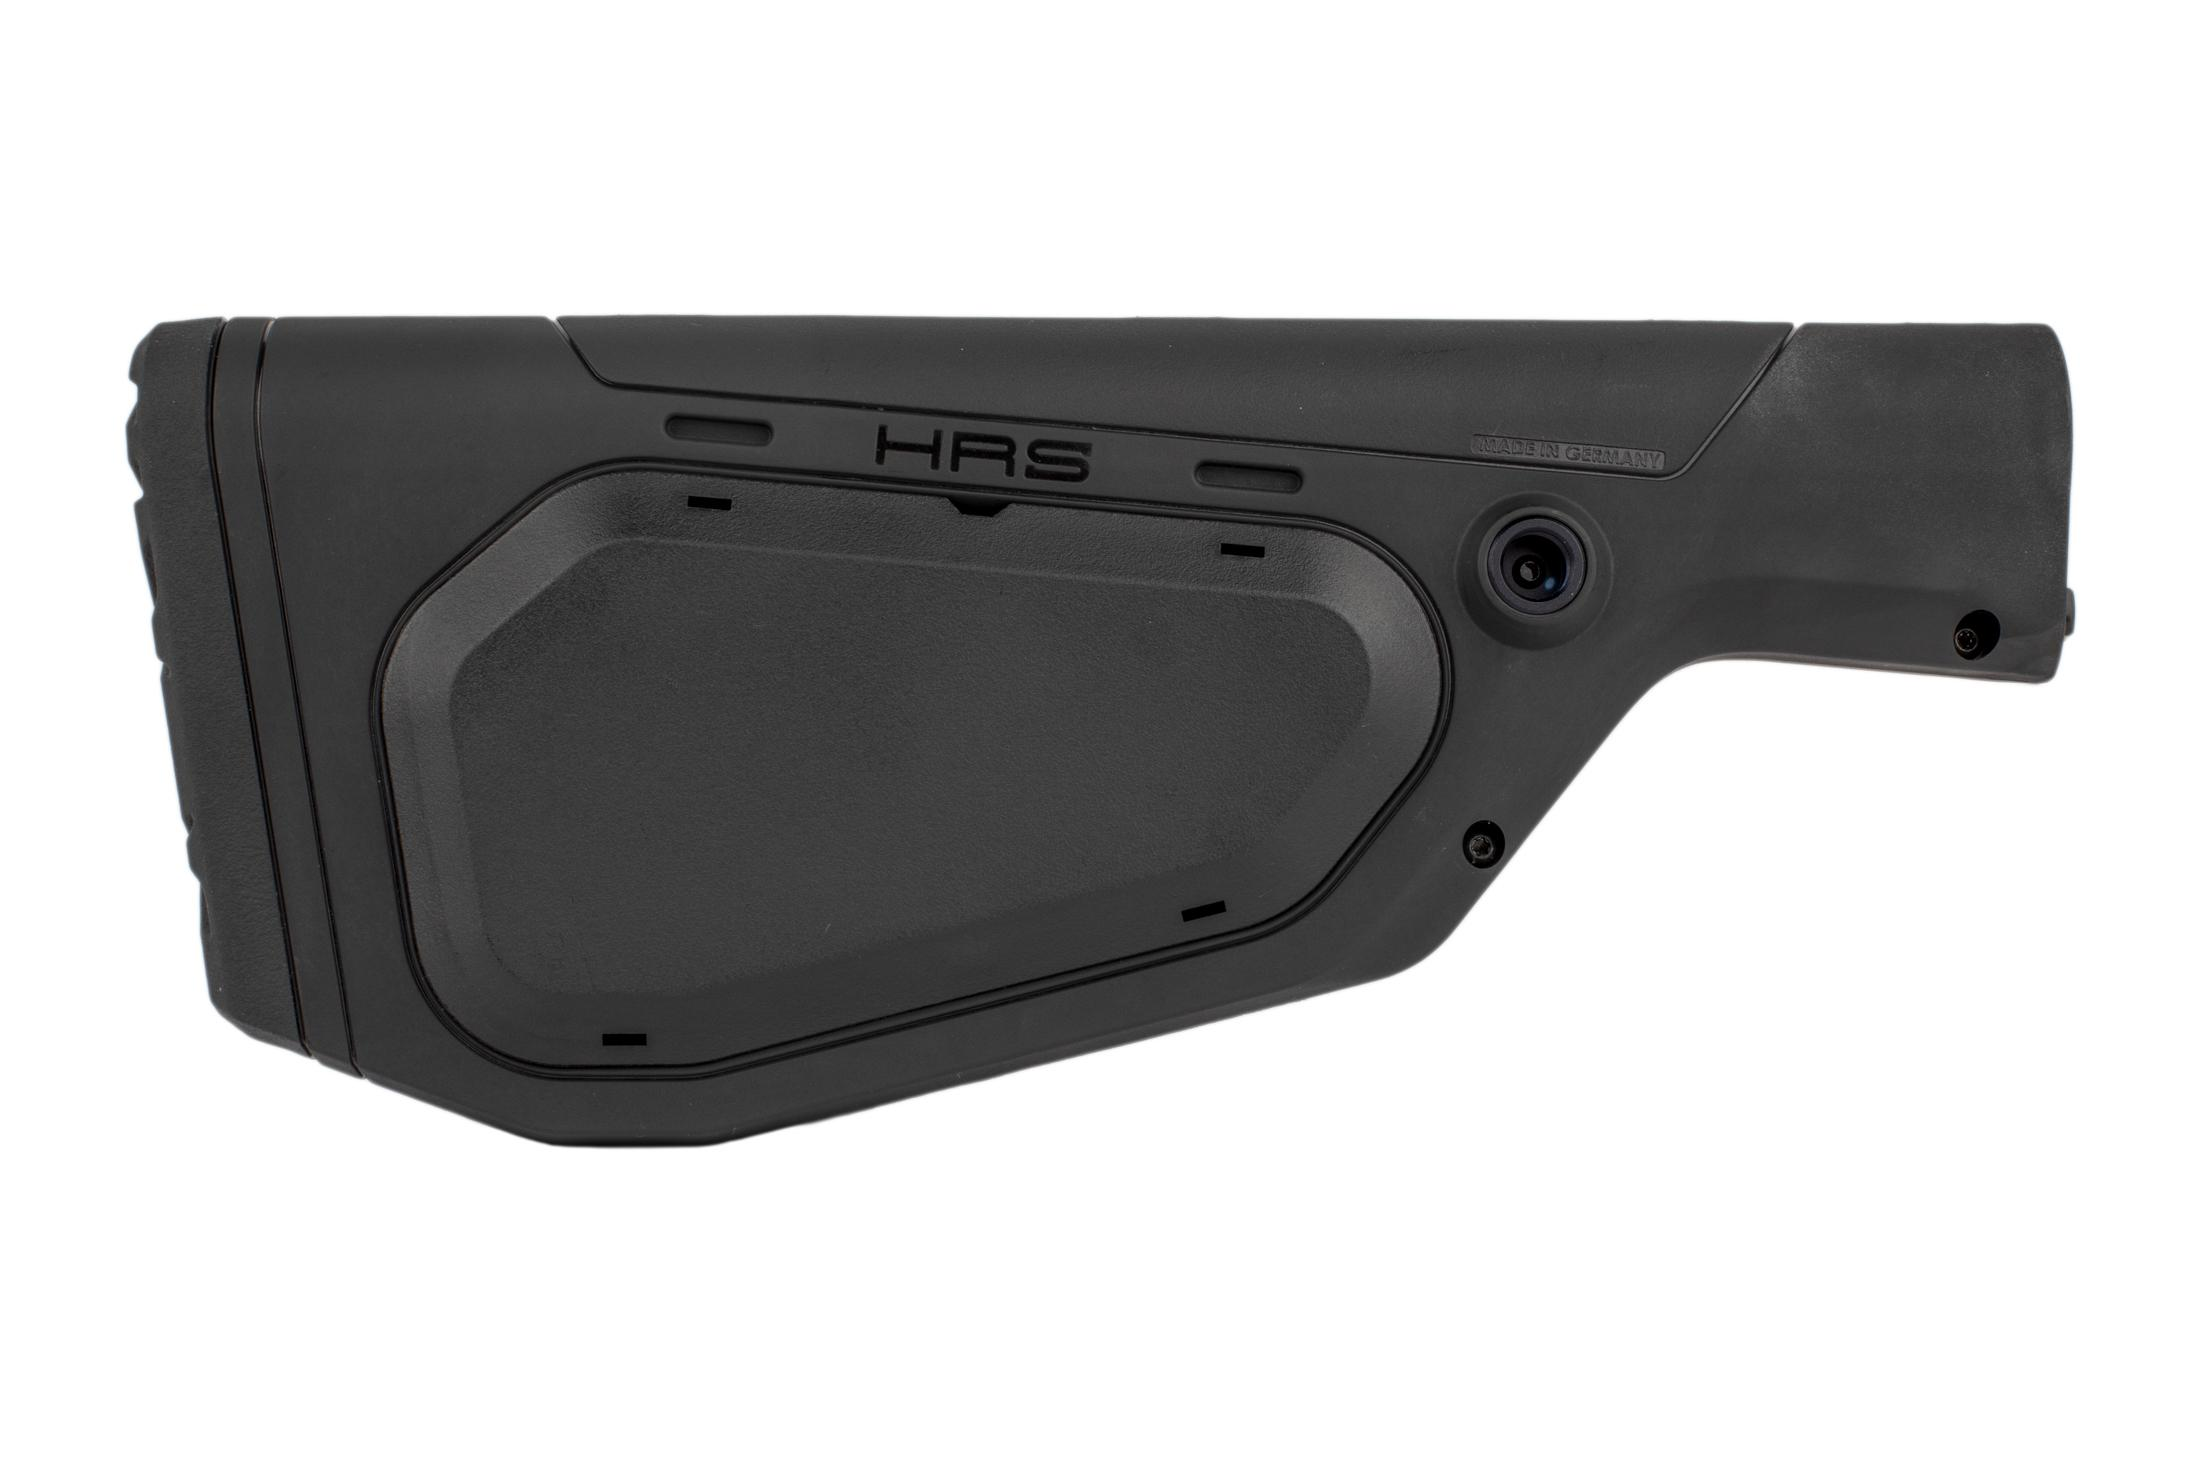 The Hera Arms HRS fixed rifle stock is made from impact resistant black polymer